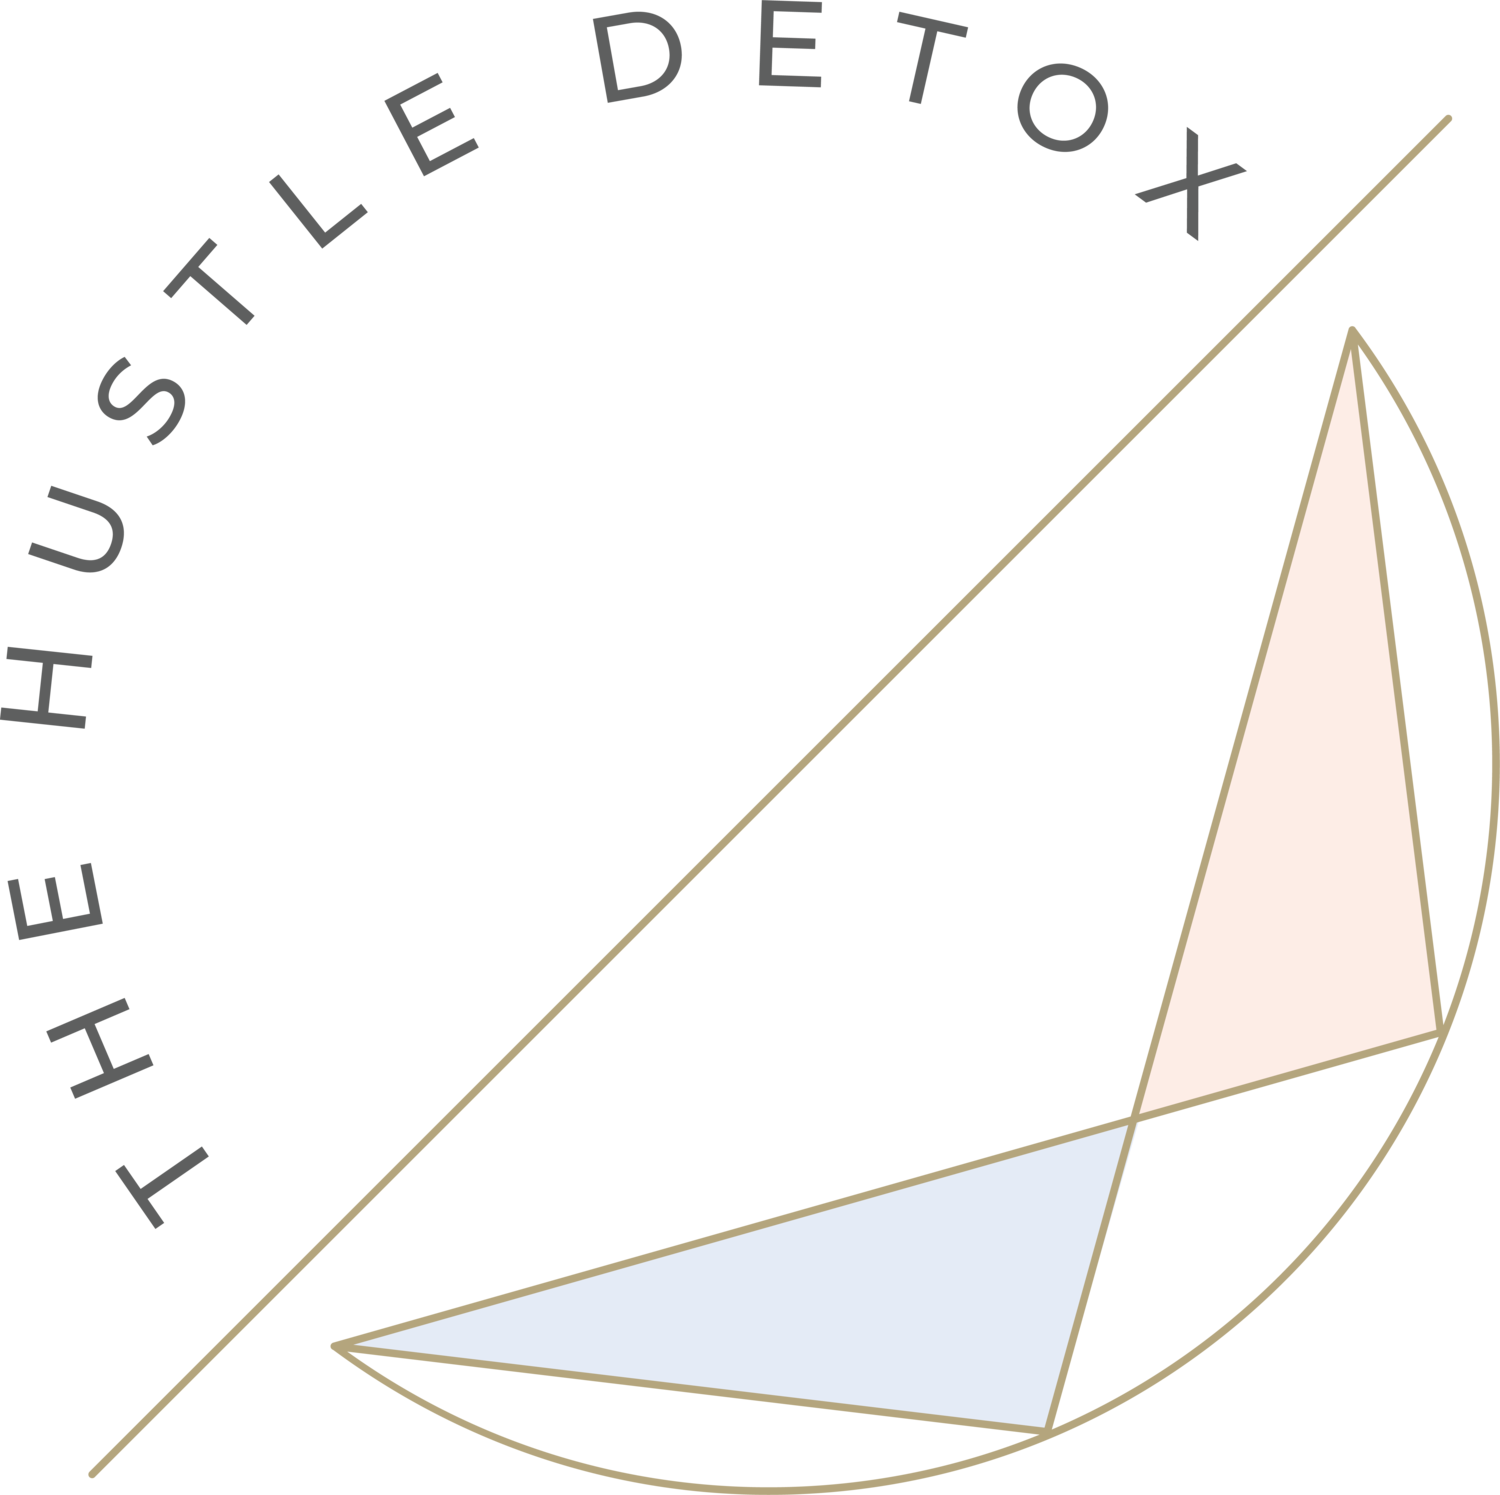 The Hustle Detox